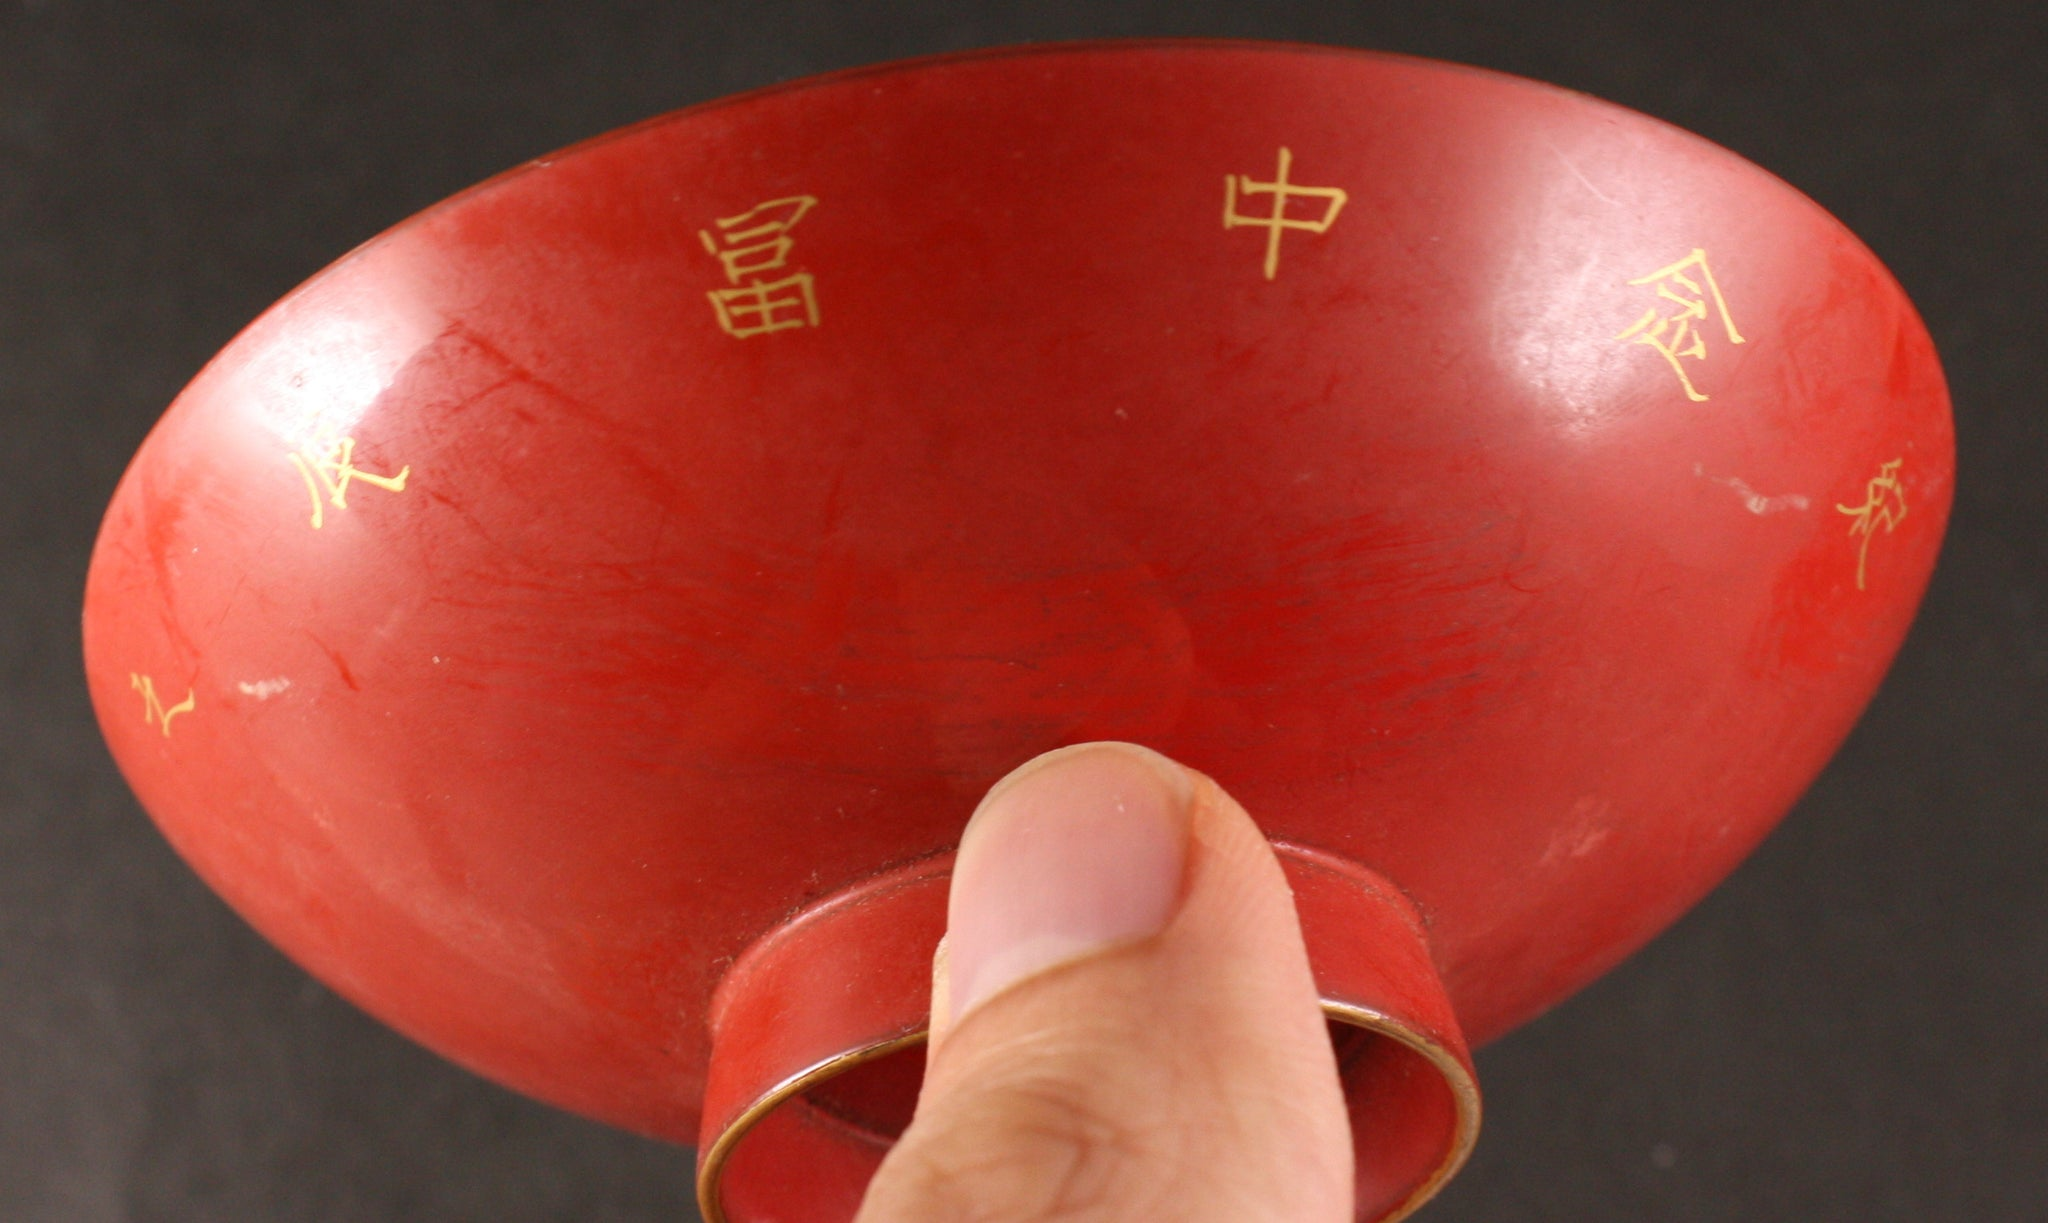 Stunning Antique Japanese Military Boxer Rebellion 8 Nations Allied Army Lacquer Sake Cup